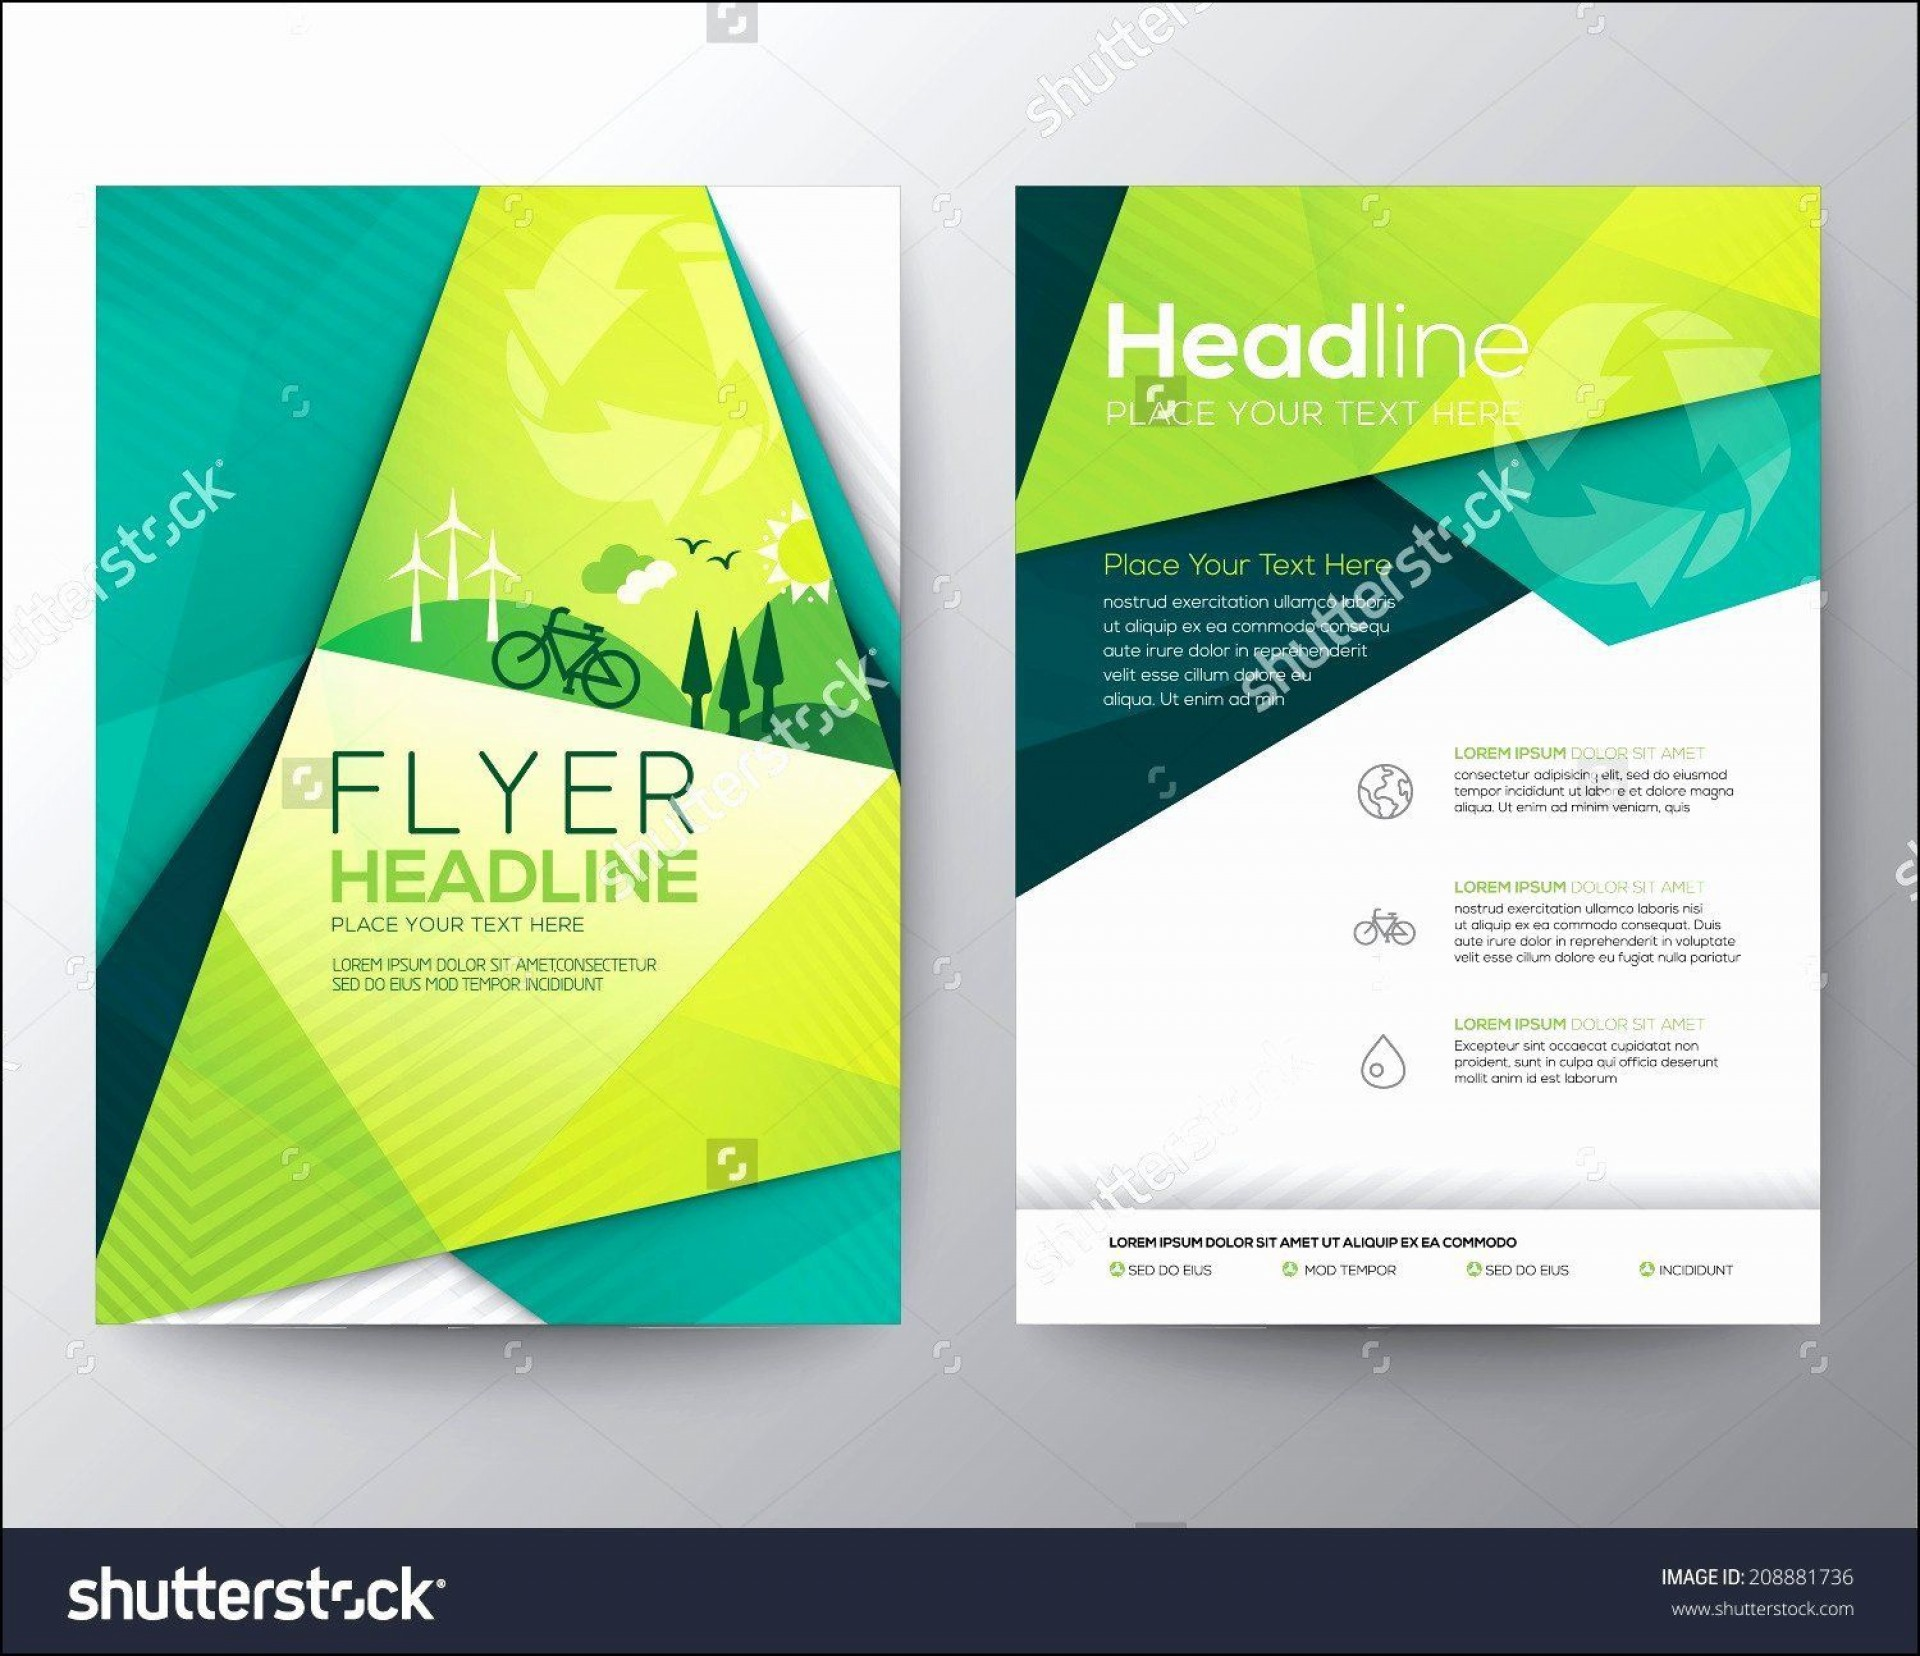 004 Amazing Photoshop Brochure Template Psd Free Download High Resolution 1920